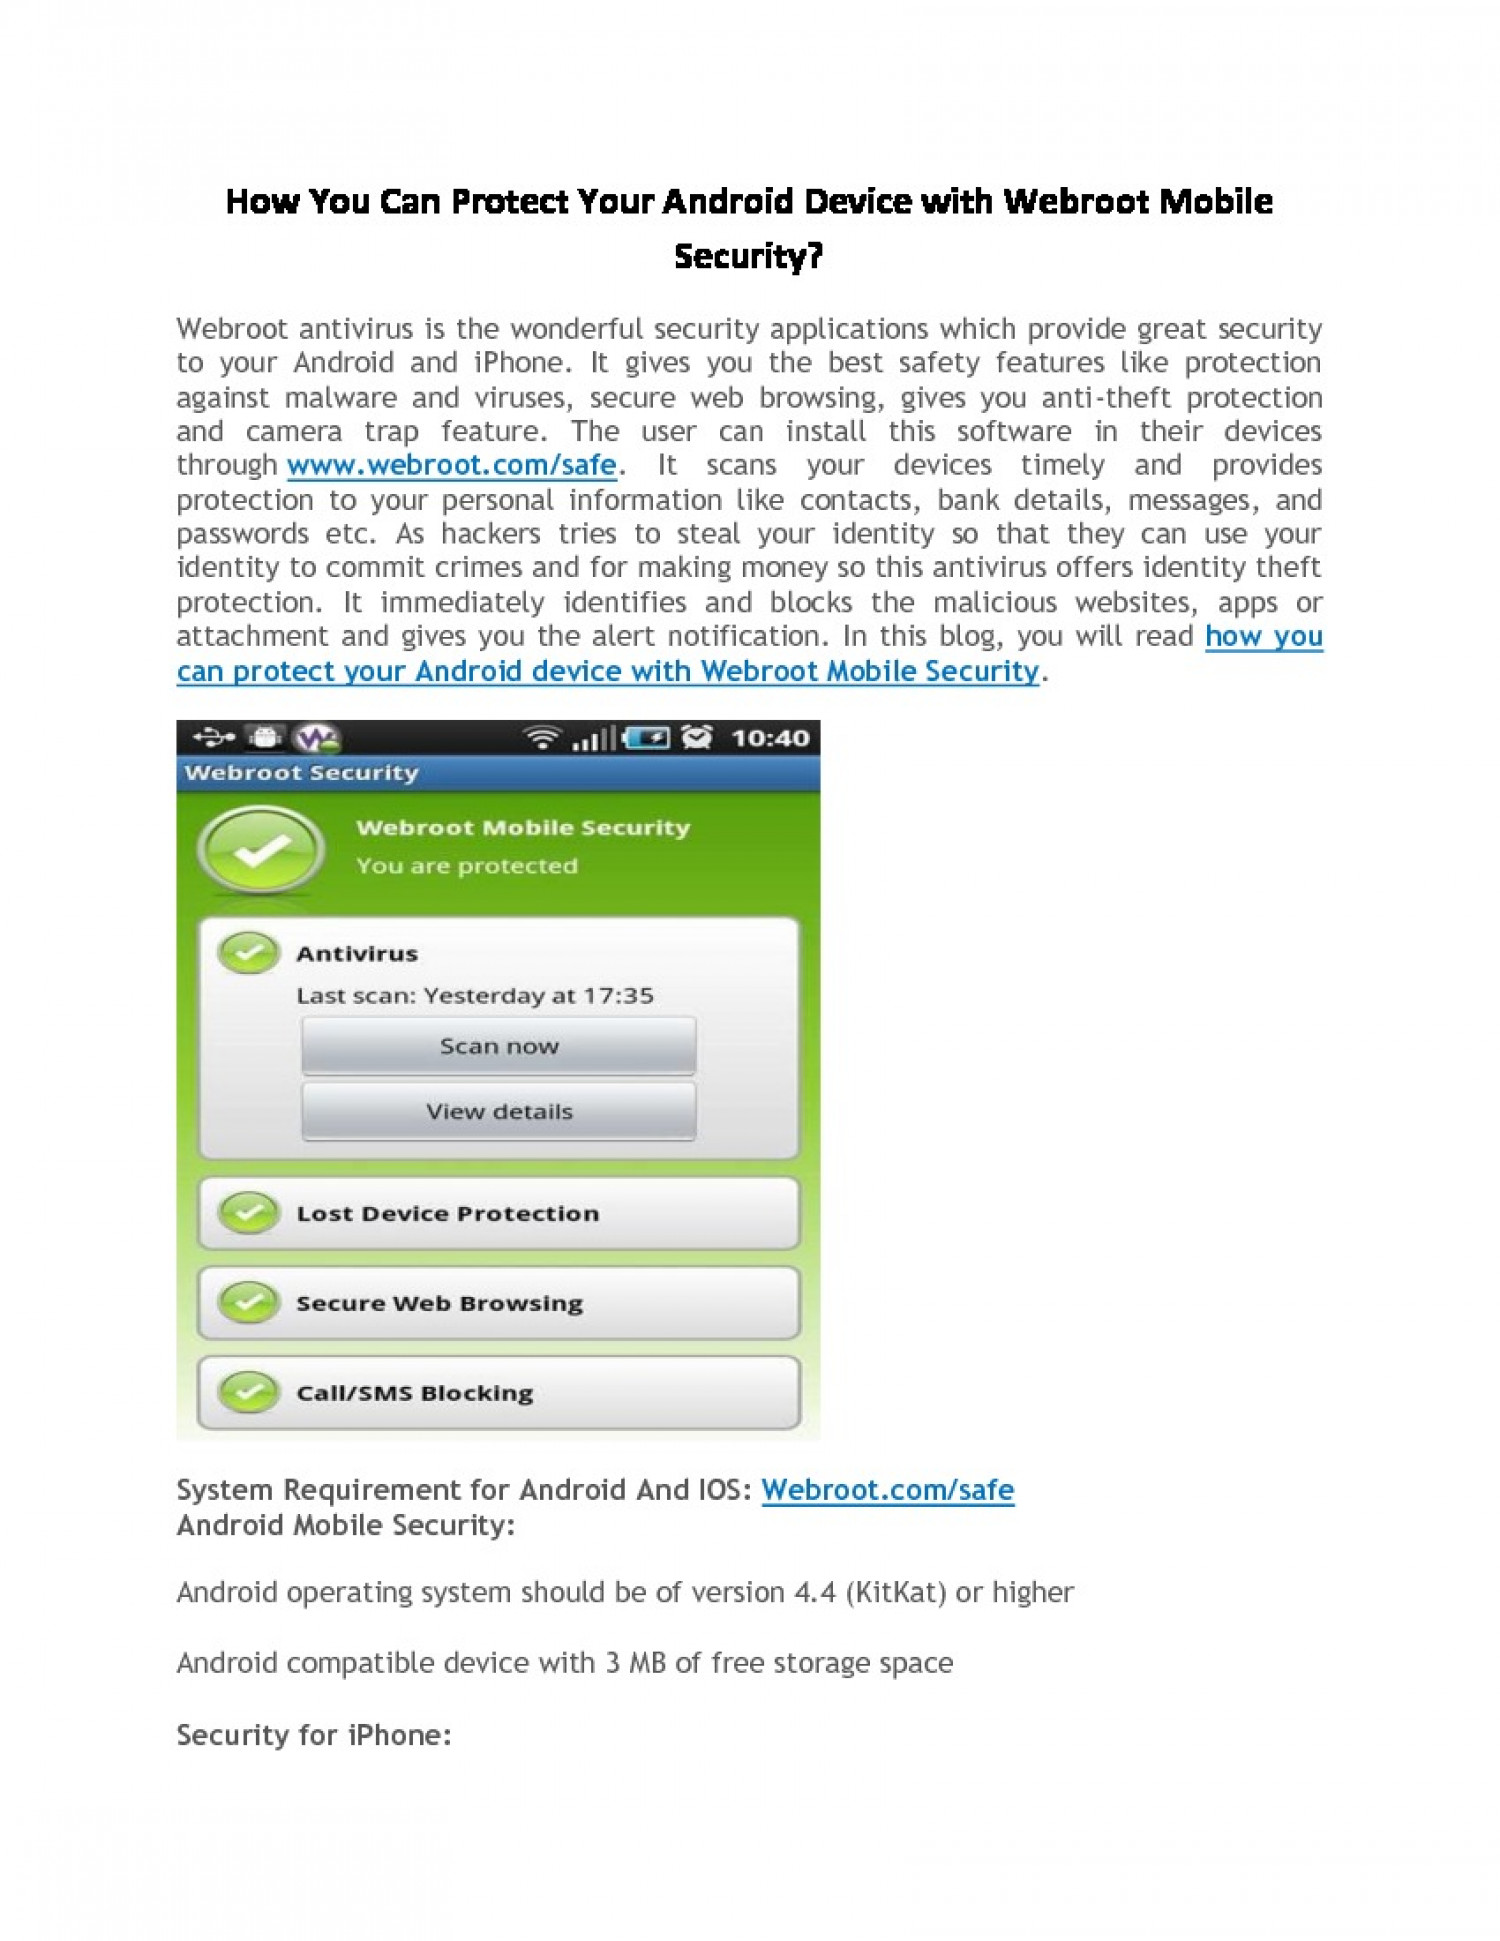 How You Can Protect Your Android Device with Webroot Mobile Security? Infographic